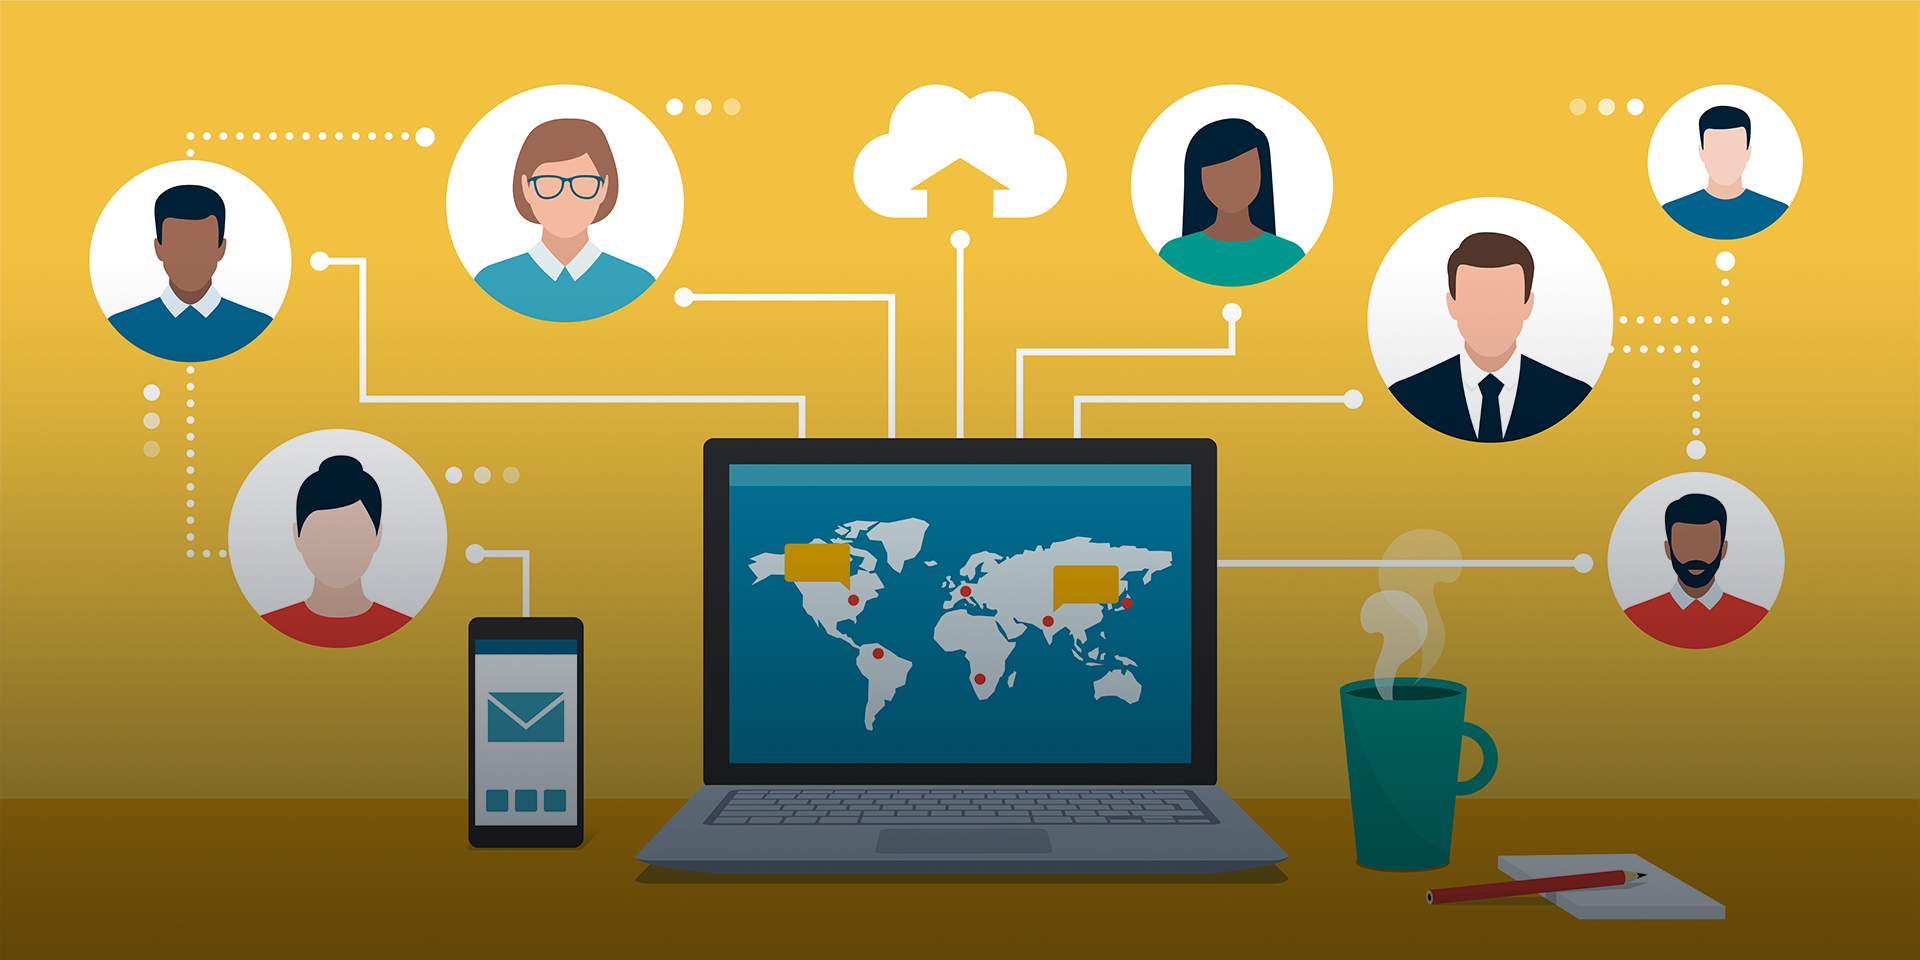 An infographic illustrating how connectivity on the internet can promote global collaboration.